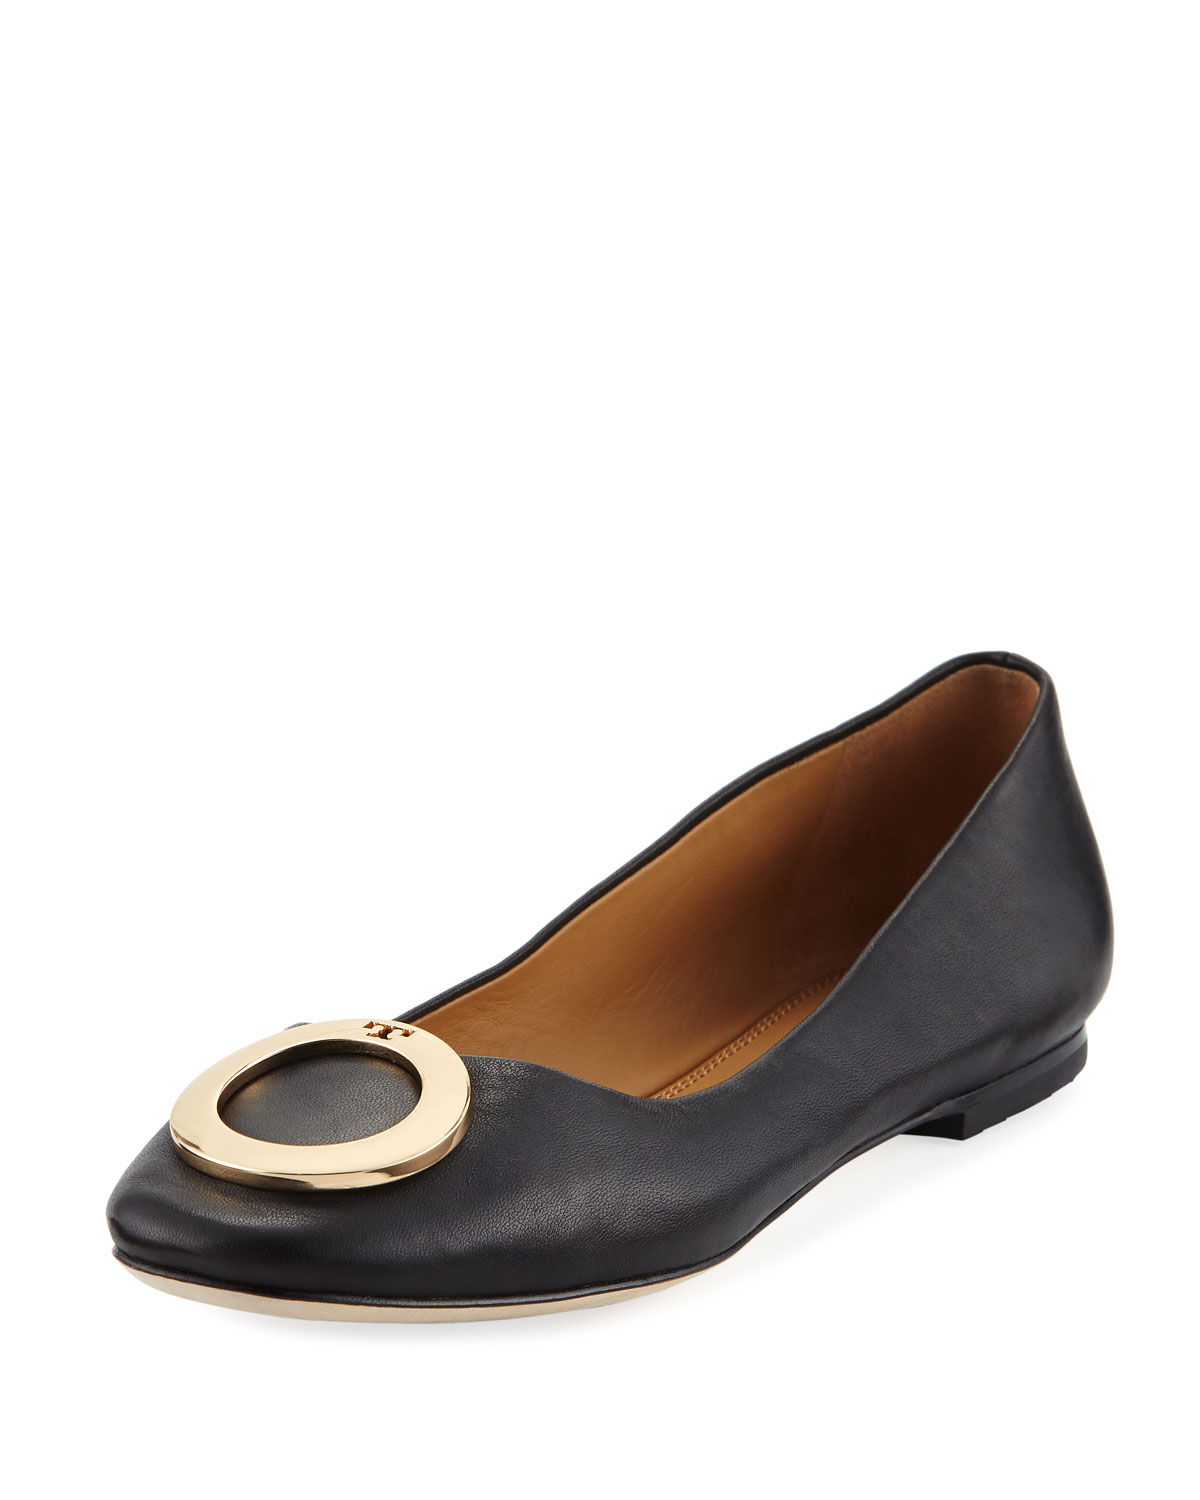 b23e4cf13 Tory Burch Caterina Ring-Buckle Leather Ballet Flats